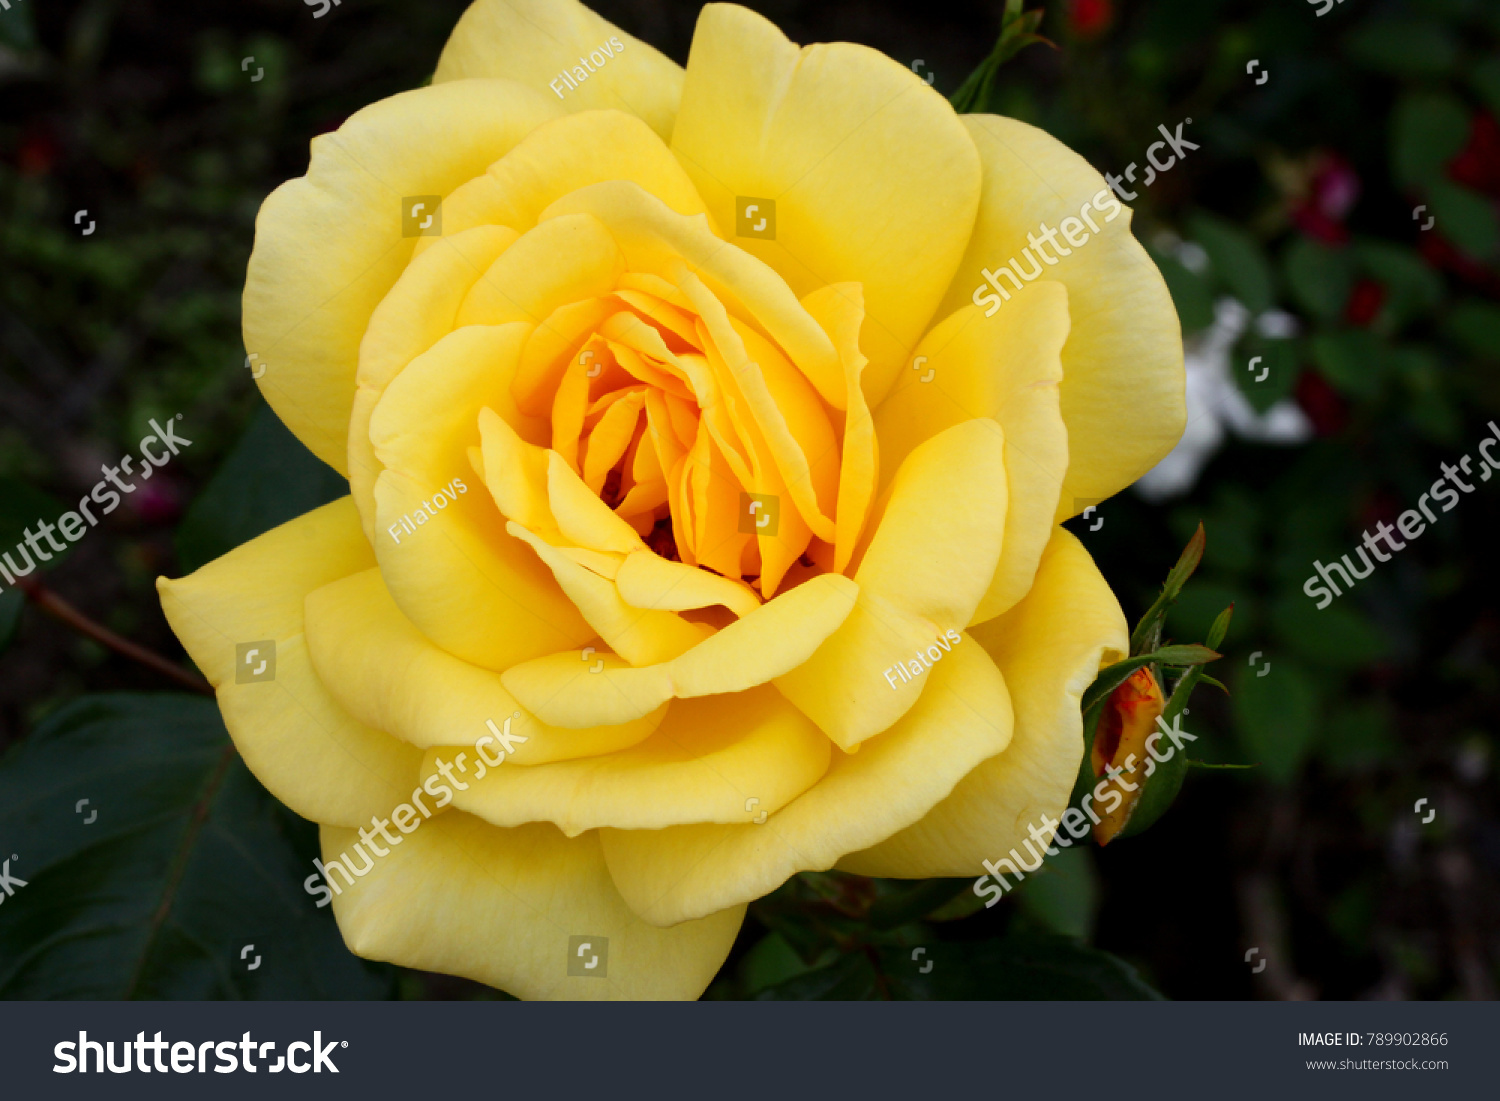 Yellow roses meaning bright cheerful joyful stock photo royalty yellow roses meaning bright cheerful and joyful create warm feelings and provide happiness they mightylinksfo